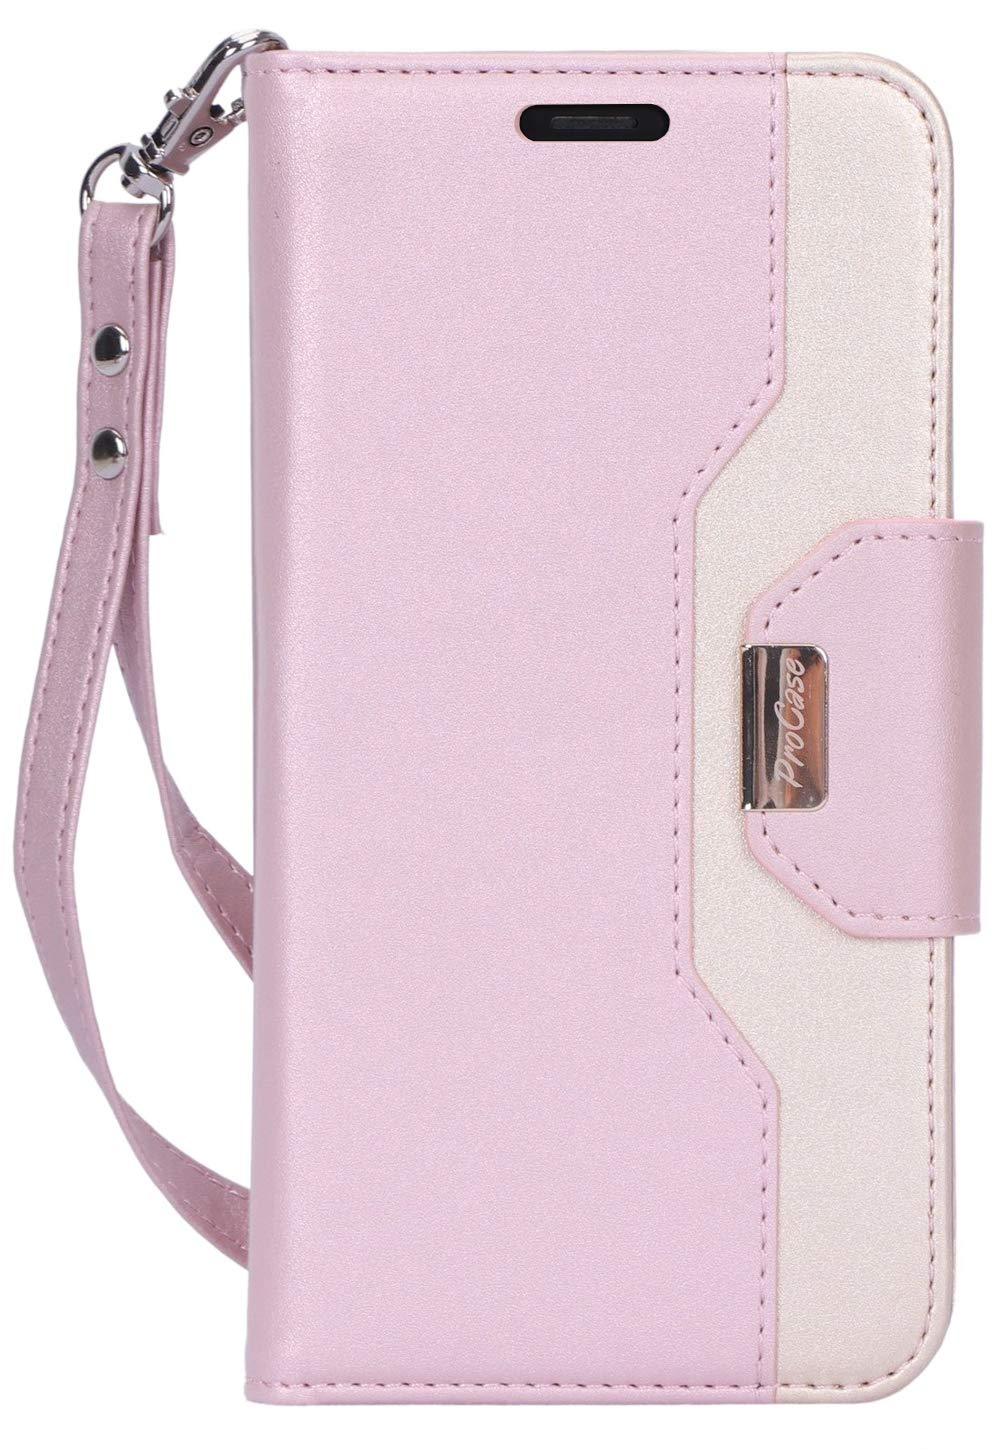 """Procase iPhone 11 Pro Wallet Case for Women, Flip Folio PU Leather Case with Card Holder Hand Strap, Protective Wallet Case for iPhone 11 Pro 5.8"""" 2019 -Pink"""